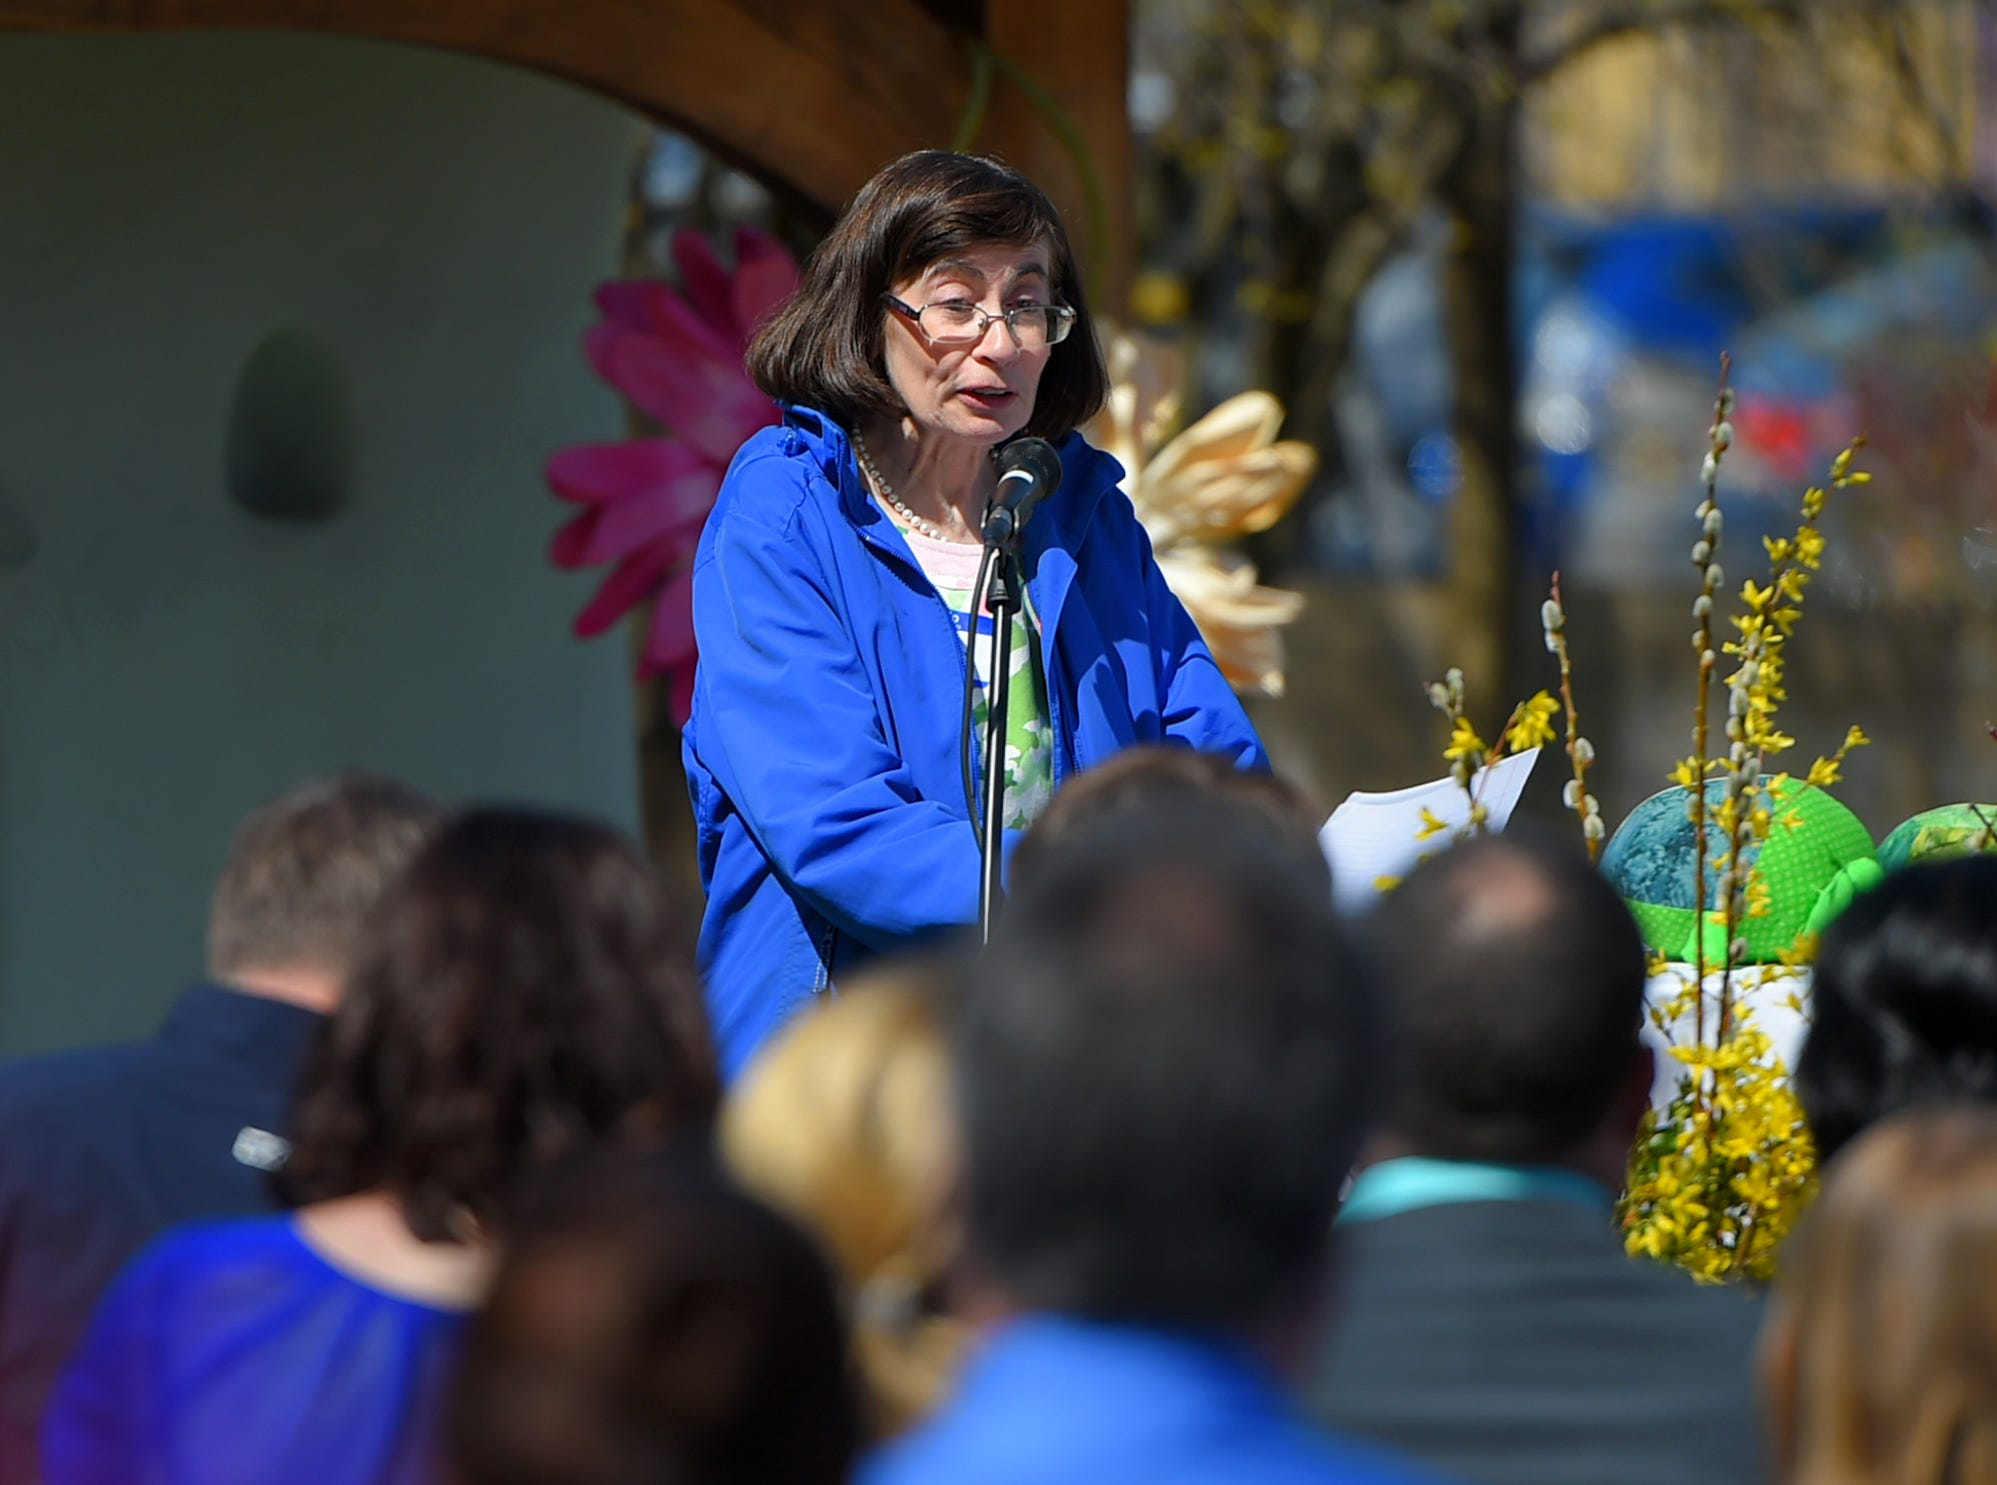 Carol Hockett, friend and colleague of Kathleen Downes, speaks at the celebration of life honoring Downes, held at the Ithaca Children's Garden on April 17, 2019.